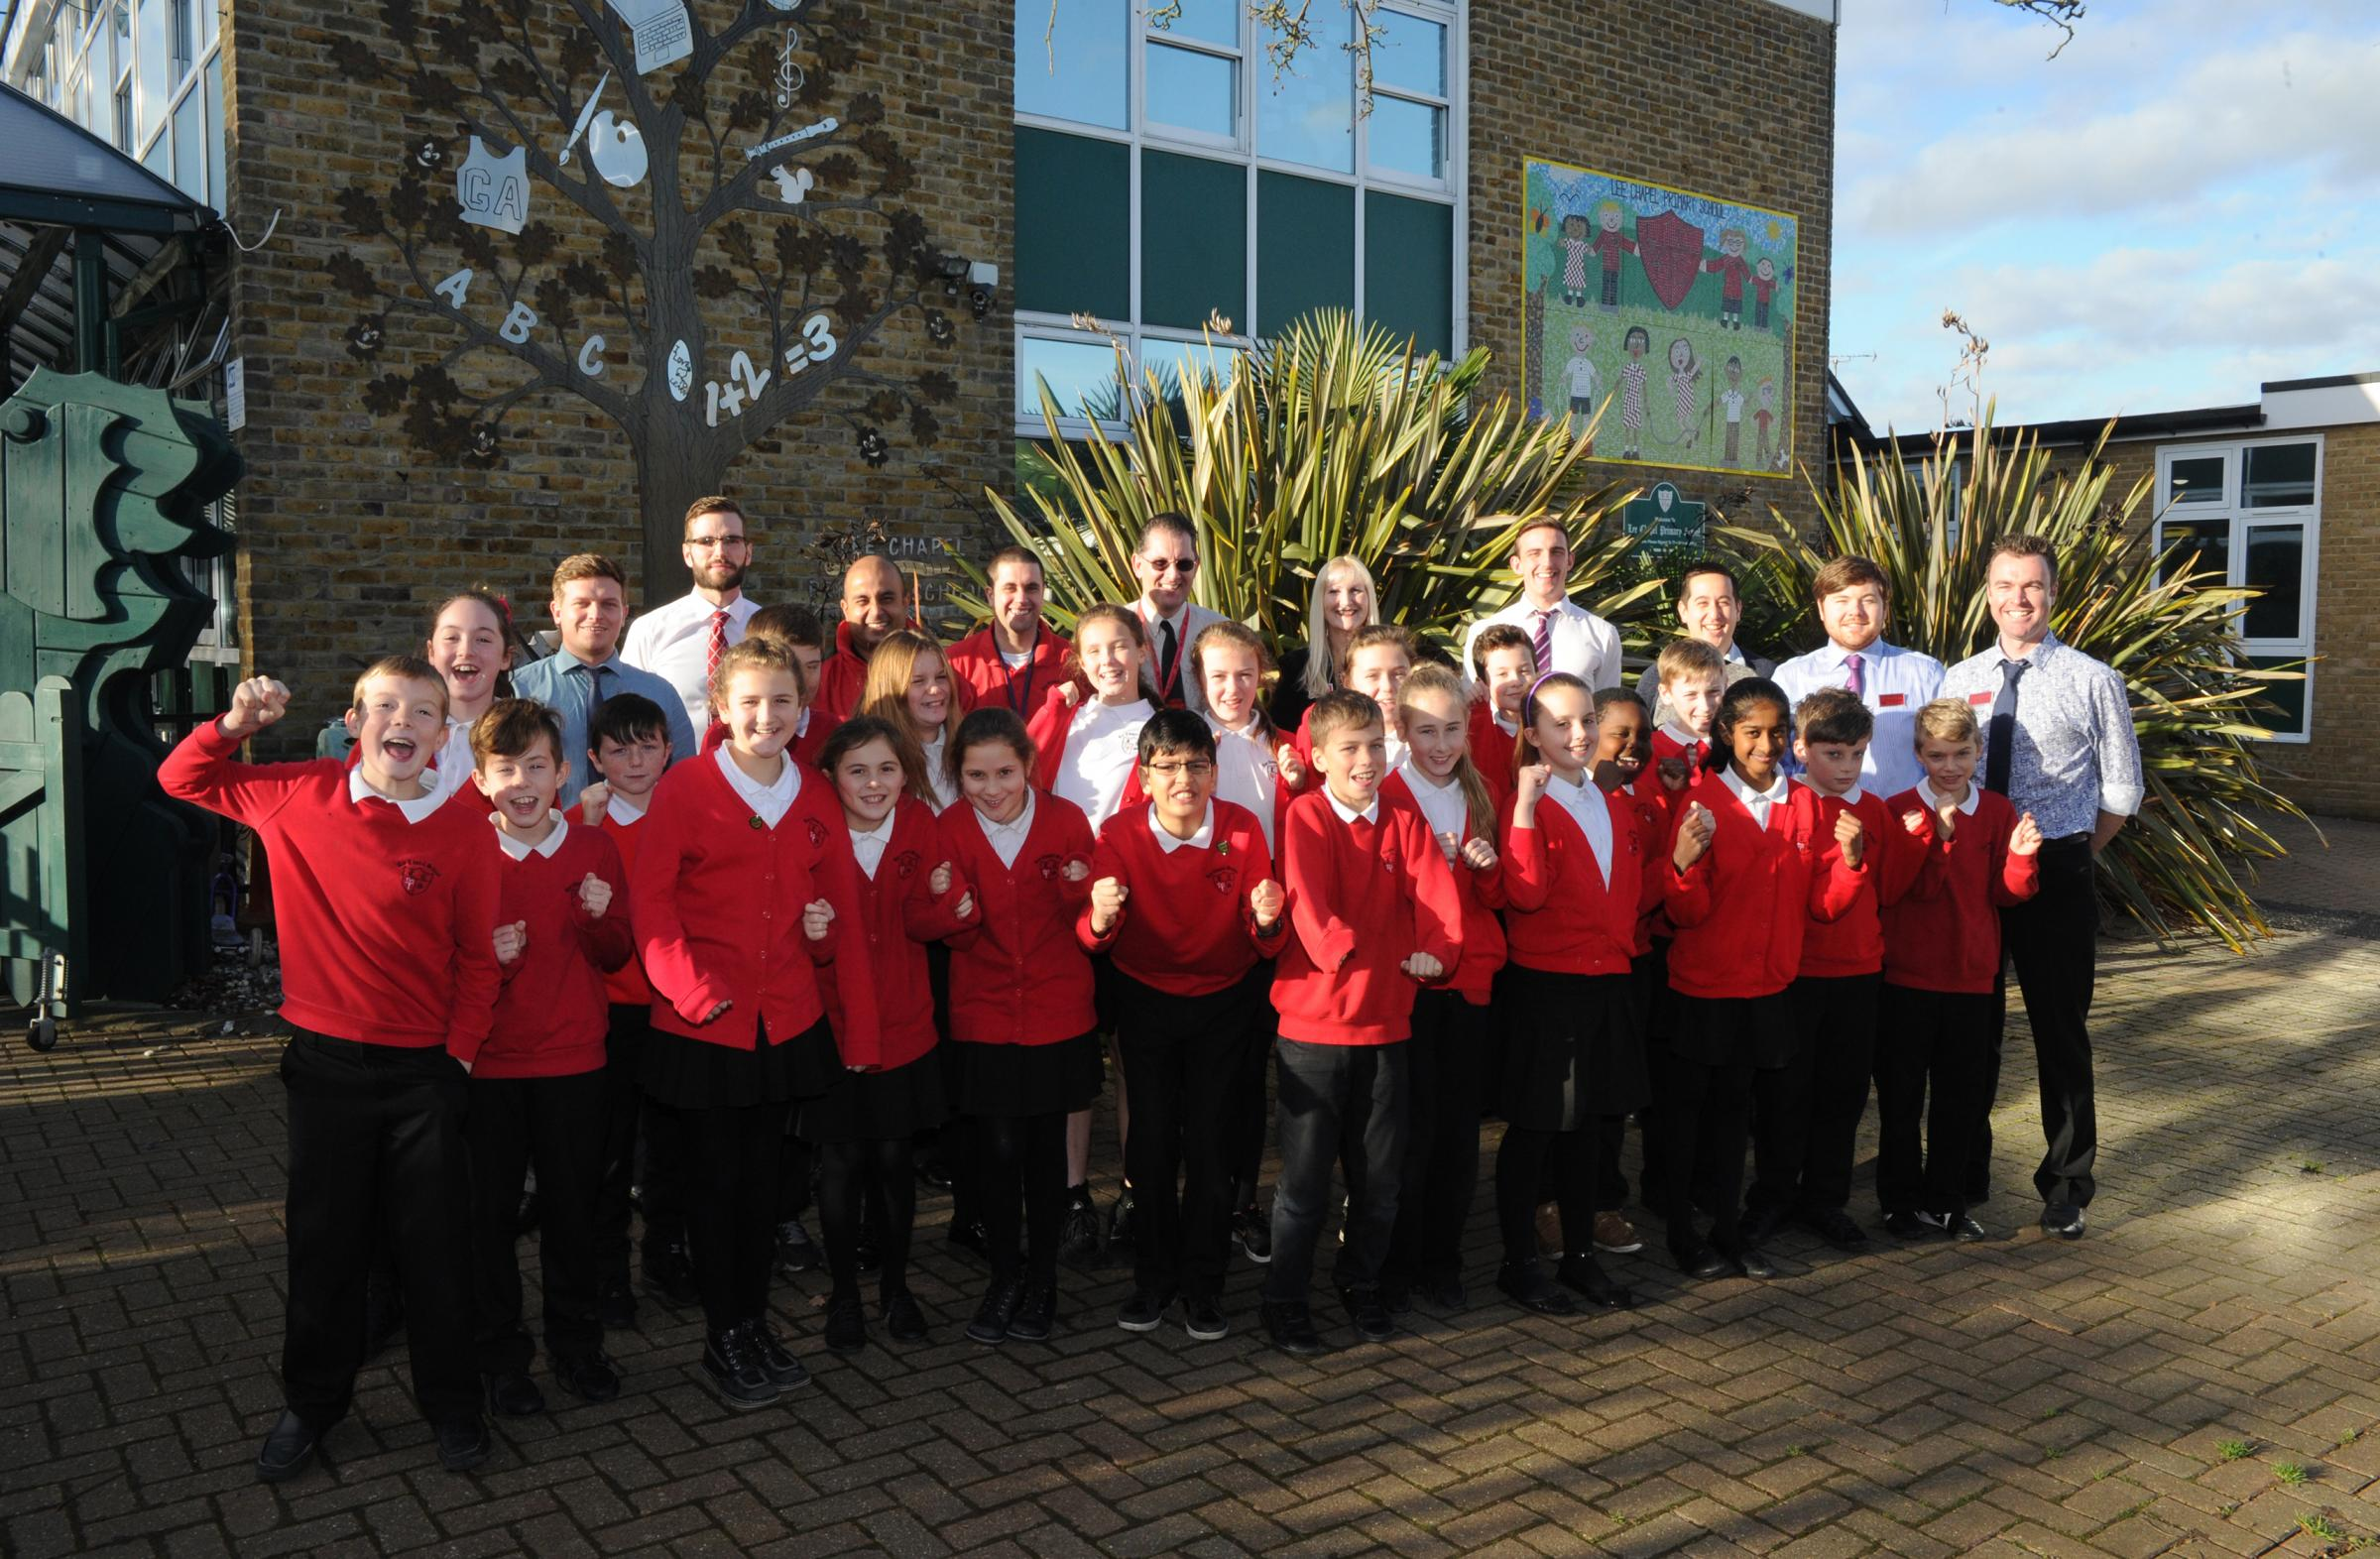 Pupils at Lee Chapel Primary School celebrate the school's success